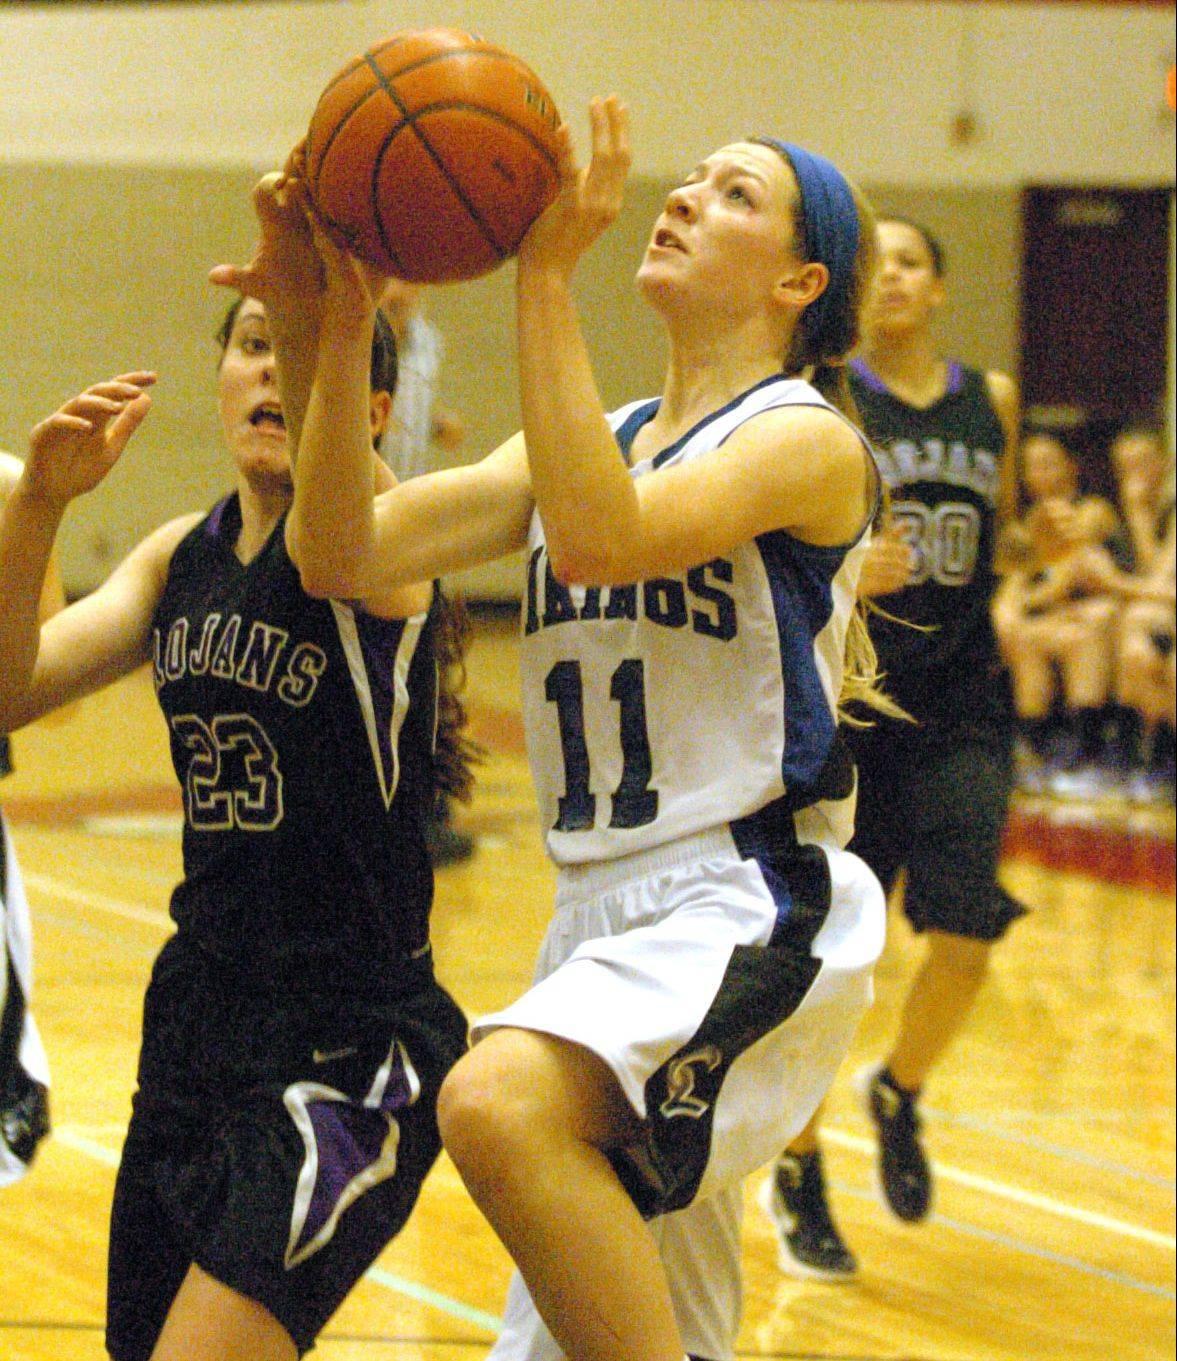 Geneva's Michaela Loebel goes in for a layup.